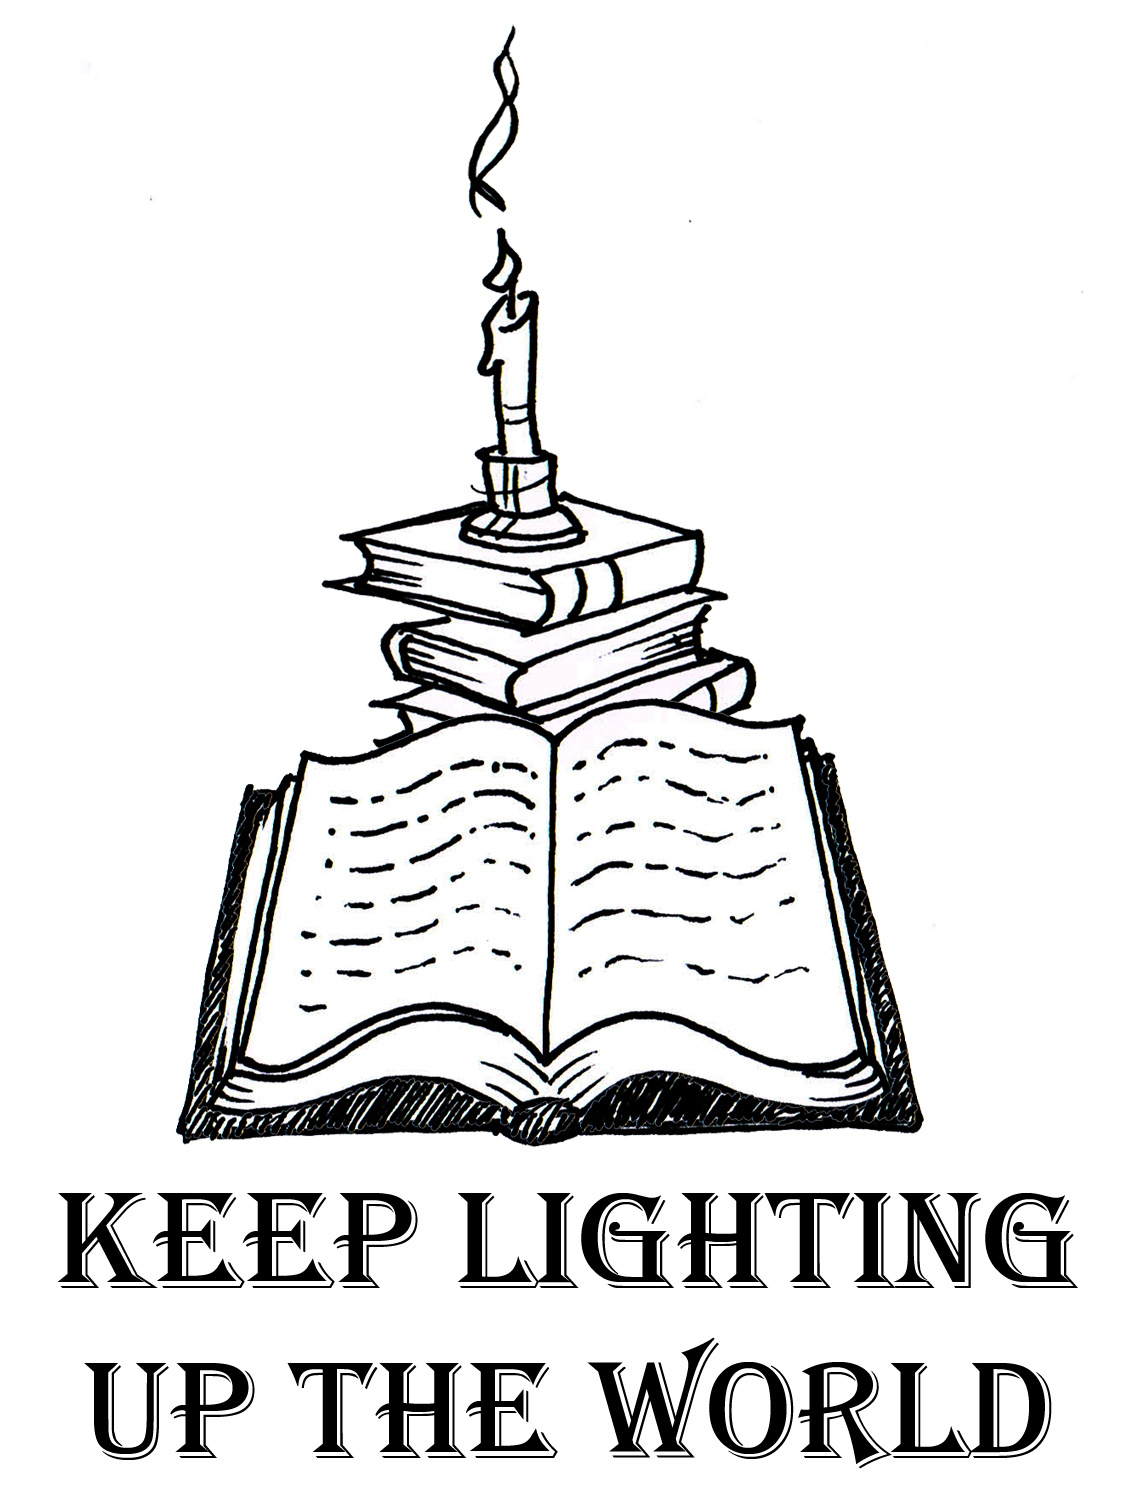 Keep Lighting Up the World